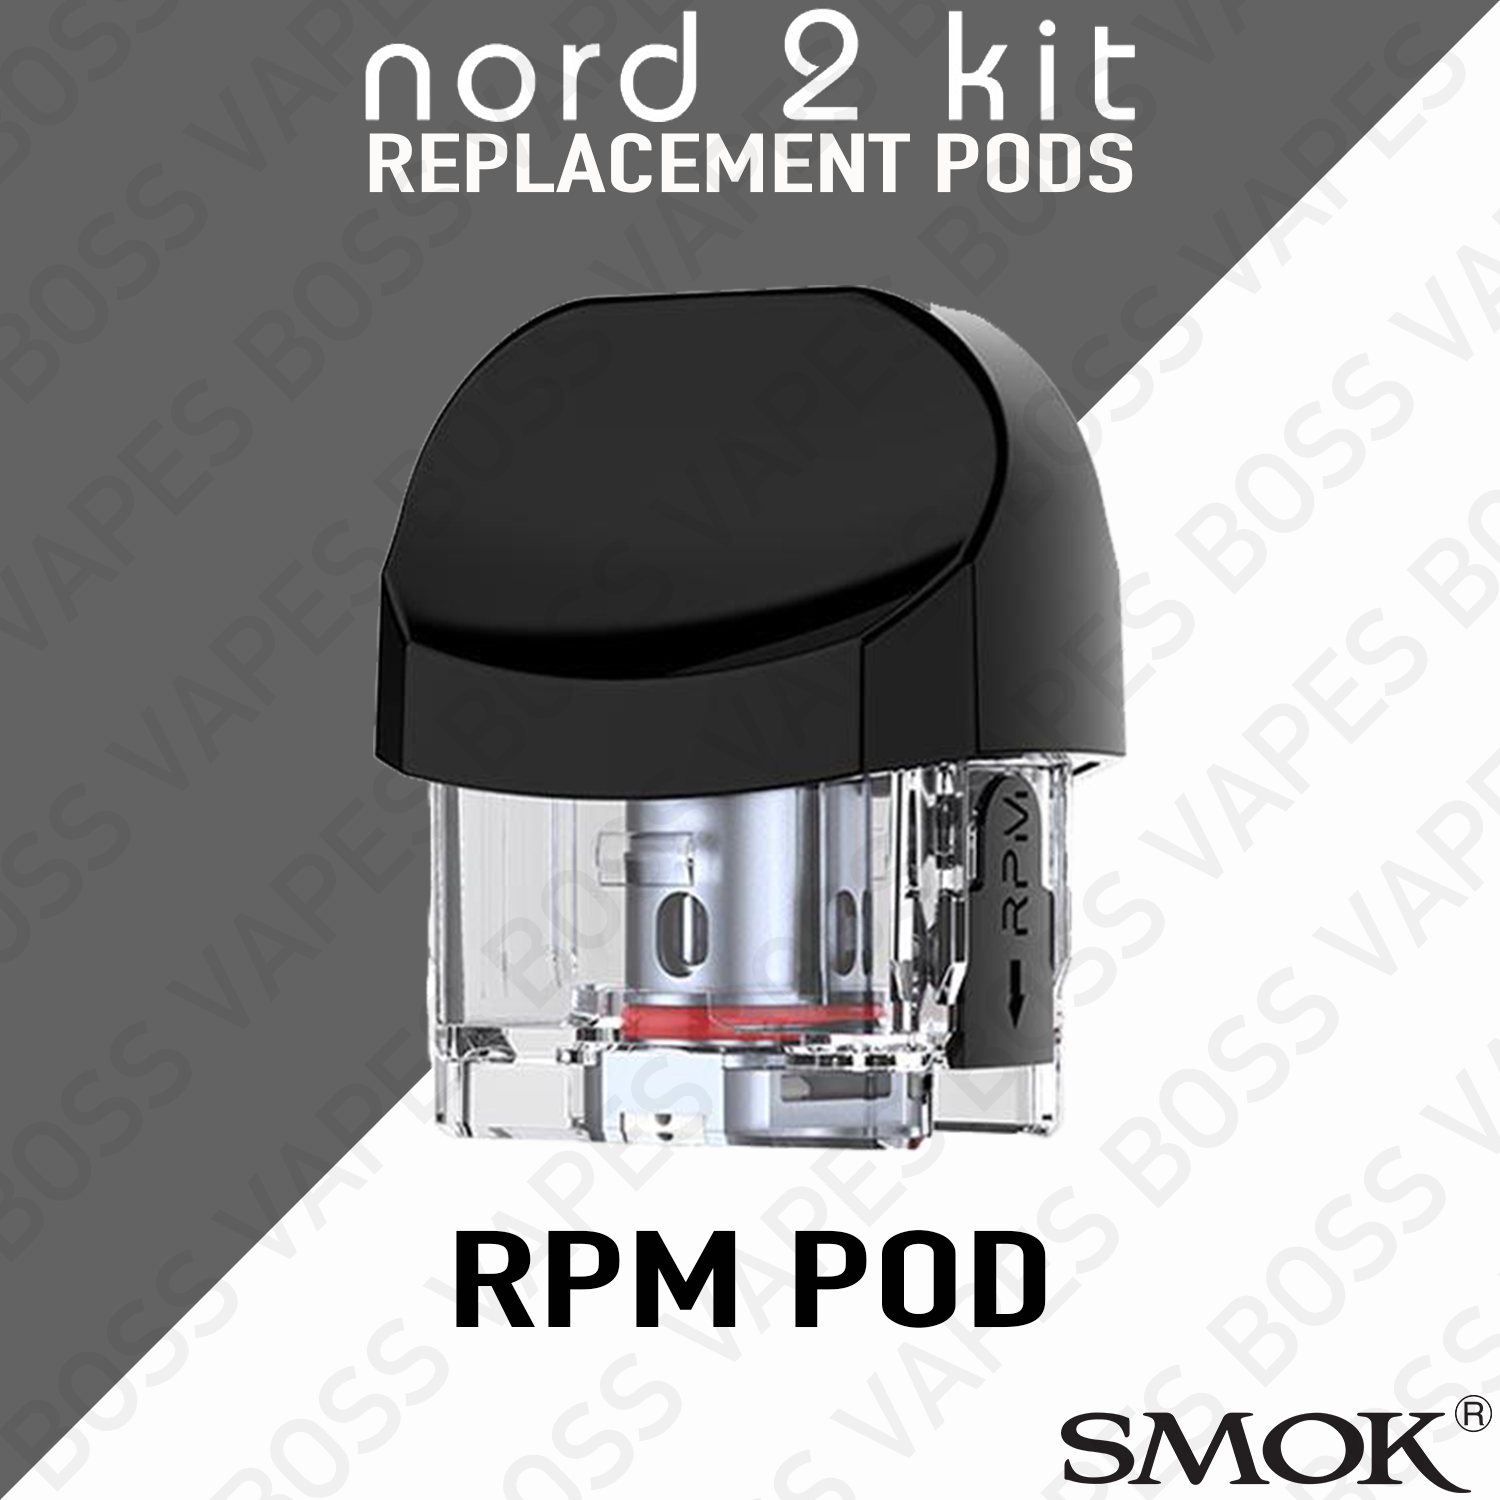 SMOK NORD 2 EMPTY POD (Pods Priced Individually)